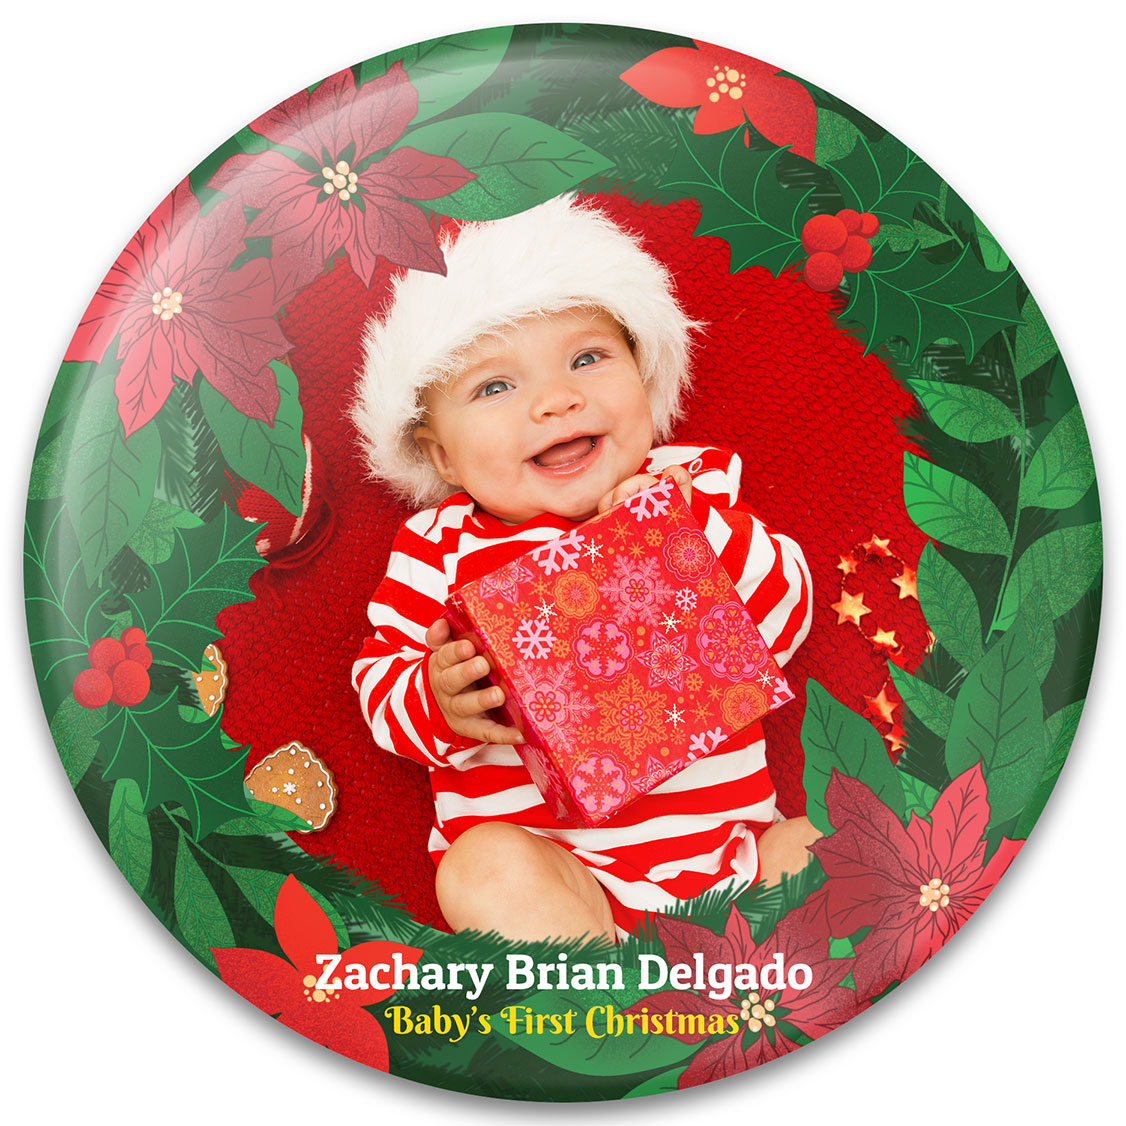 Poinsettia Wreath Baby's First Christmas Ornament Design